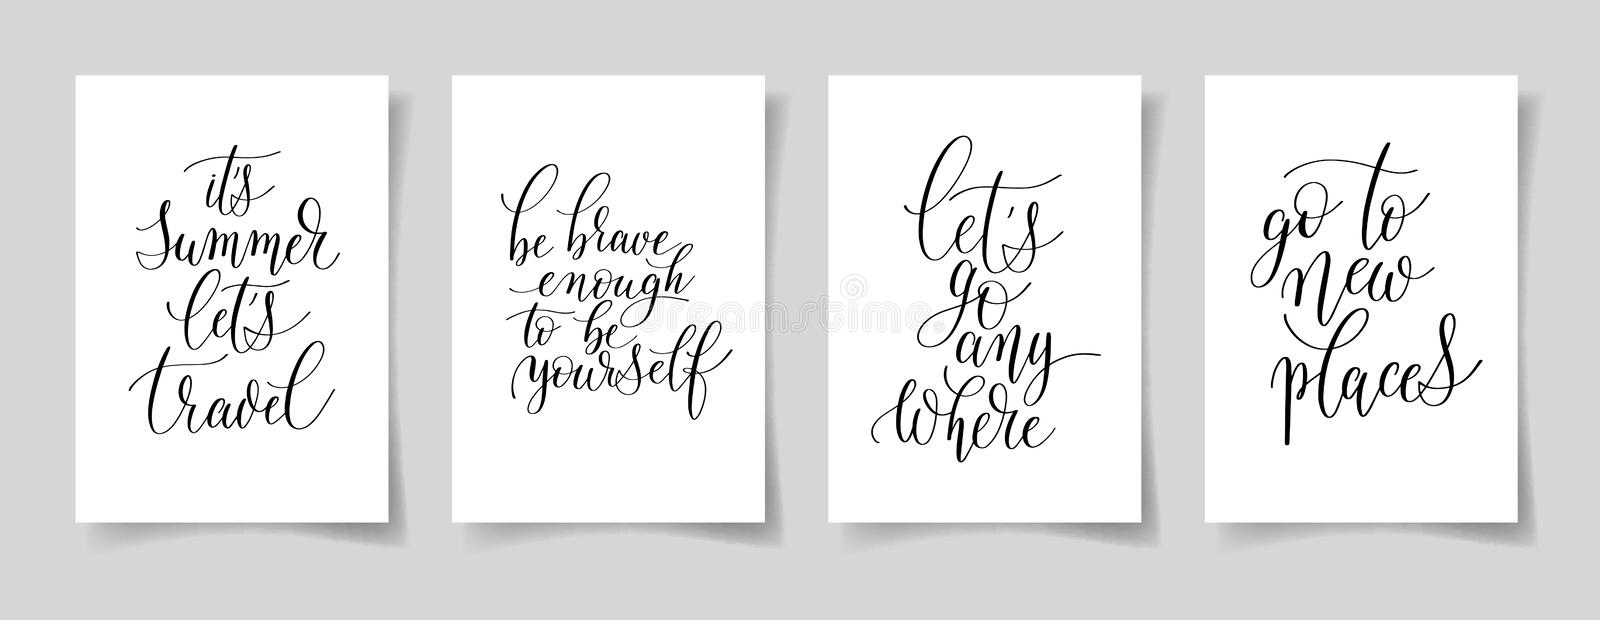 Set of four hand written lettering positive quotes on paper A4. About life and travel, modern calligraphy vector illustration collection royalty free illustration